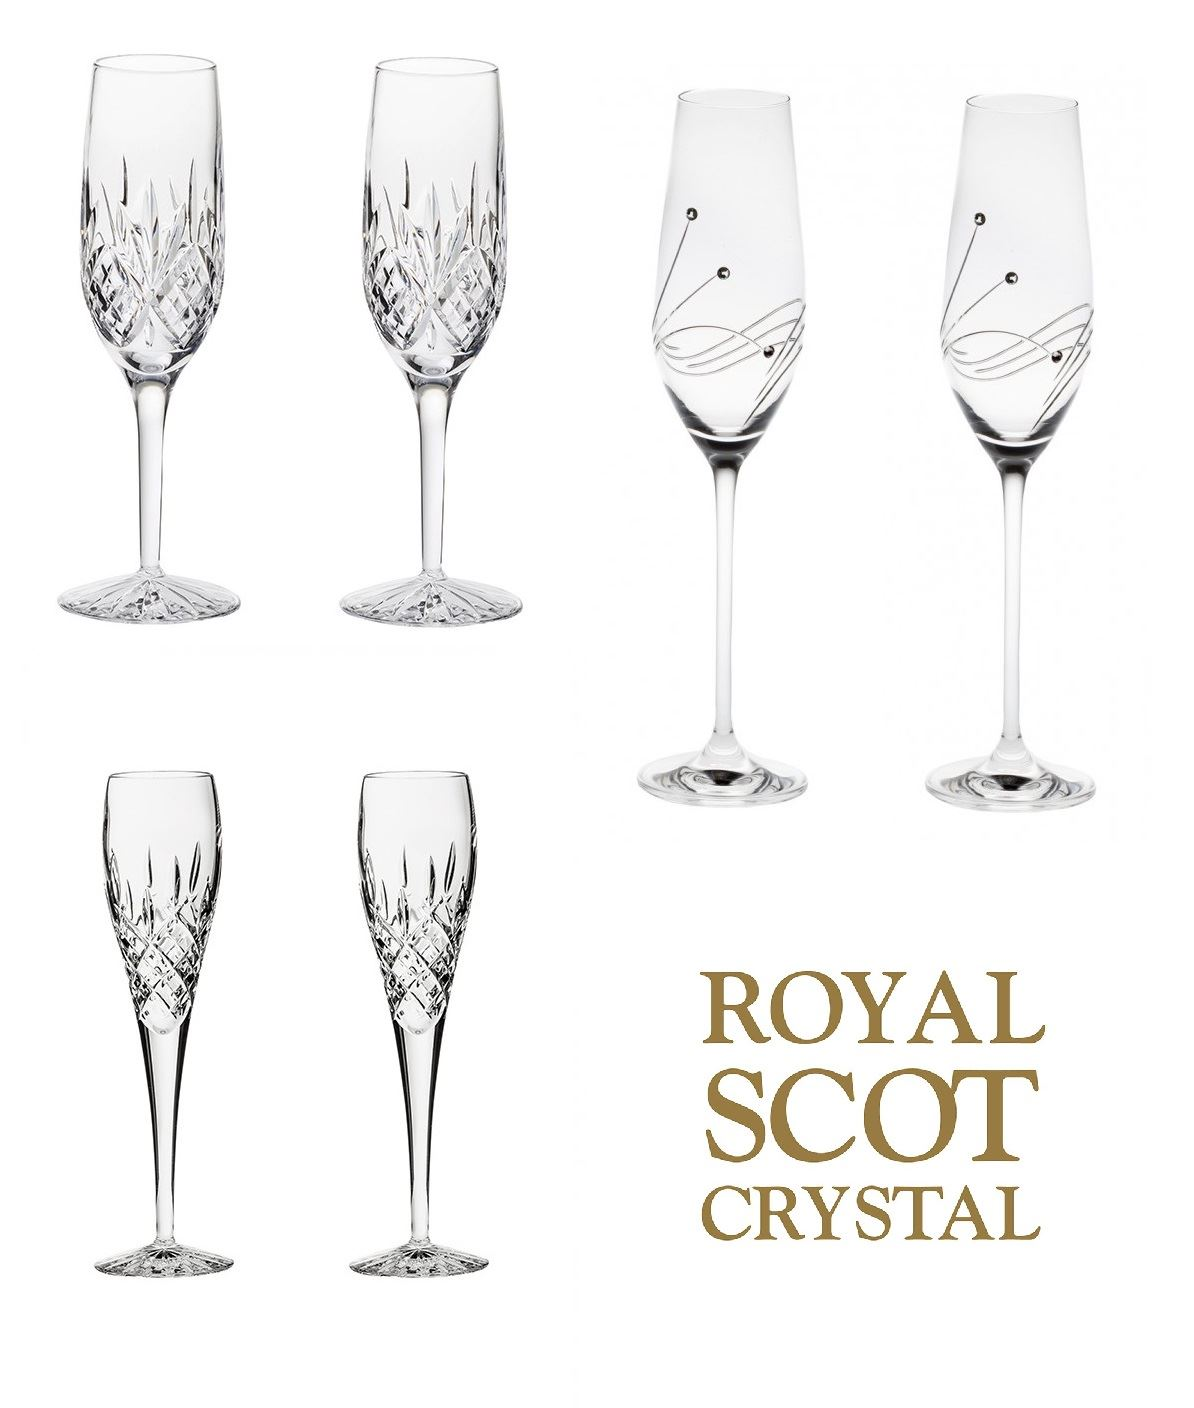 royal scot crystal 2er set champagner glas strass london oder highland. Black Bedroom Furniture Sets. Home Design Ideas